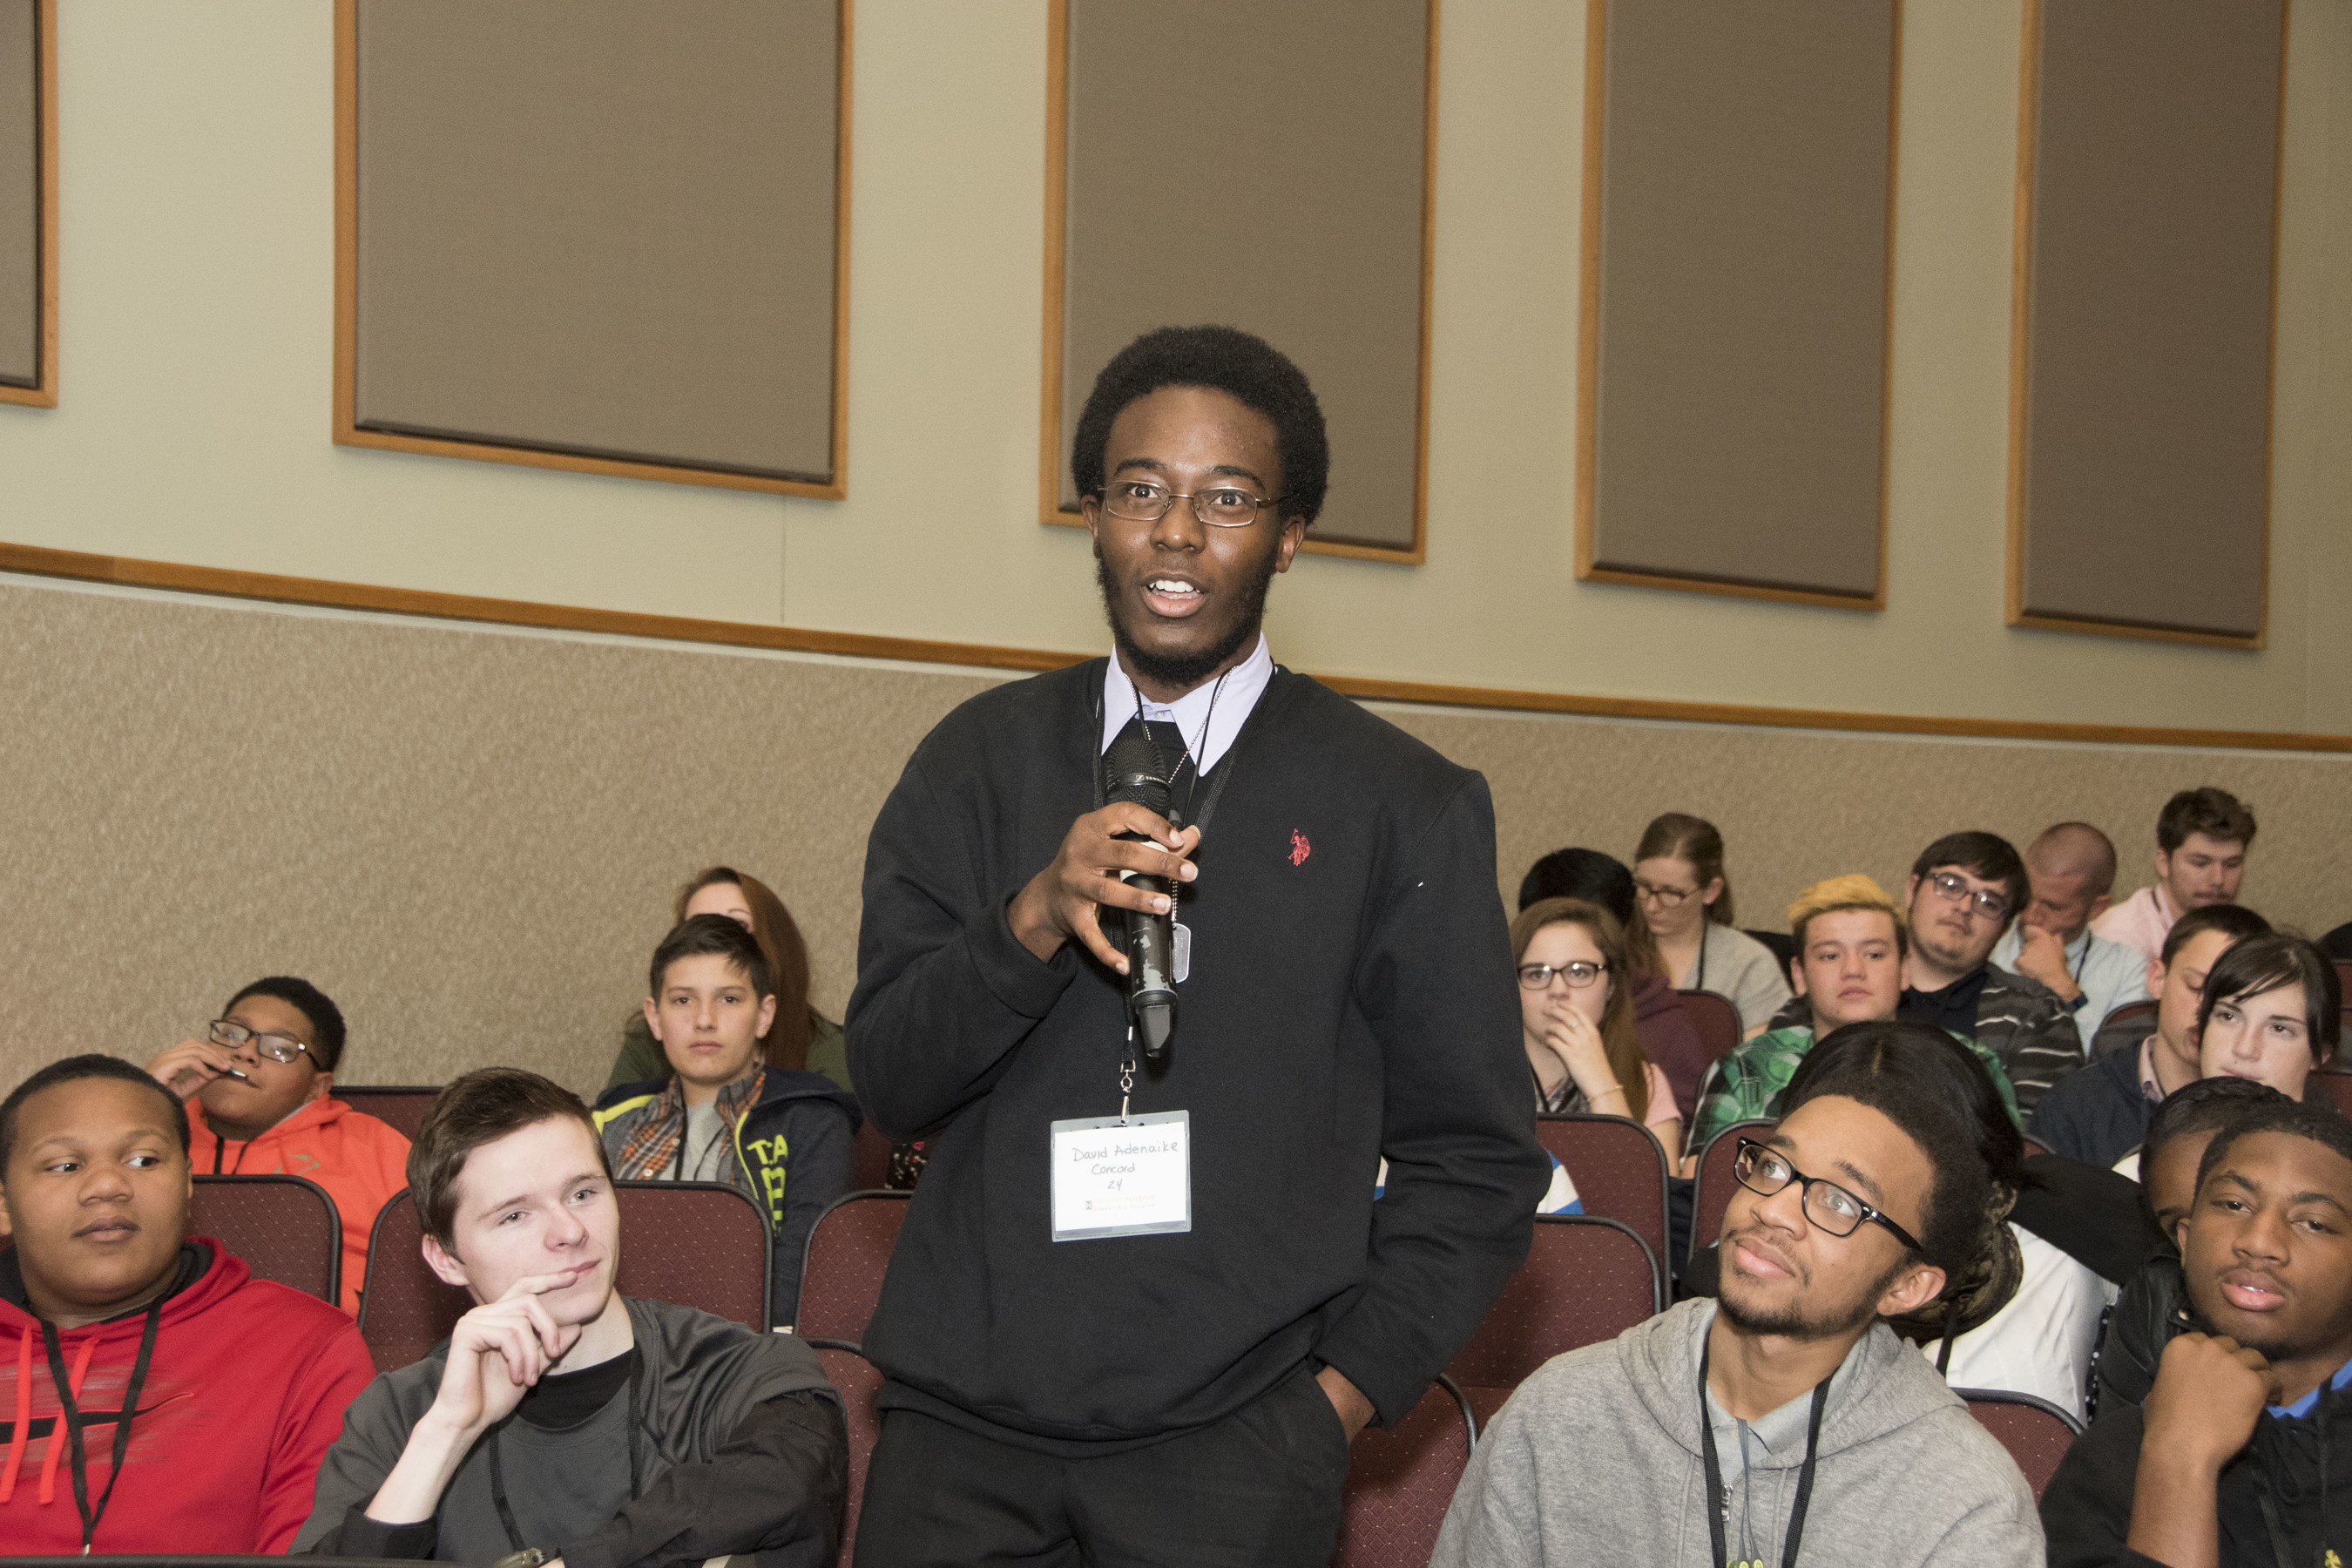 """A student asks a question at Siegfried Maybank Leadership Program's(TM) """"Create Your Future"""" event at the University of Delaware."""